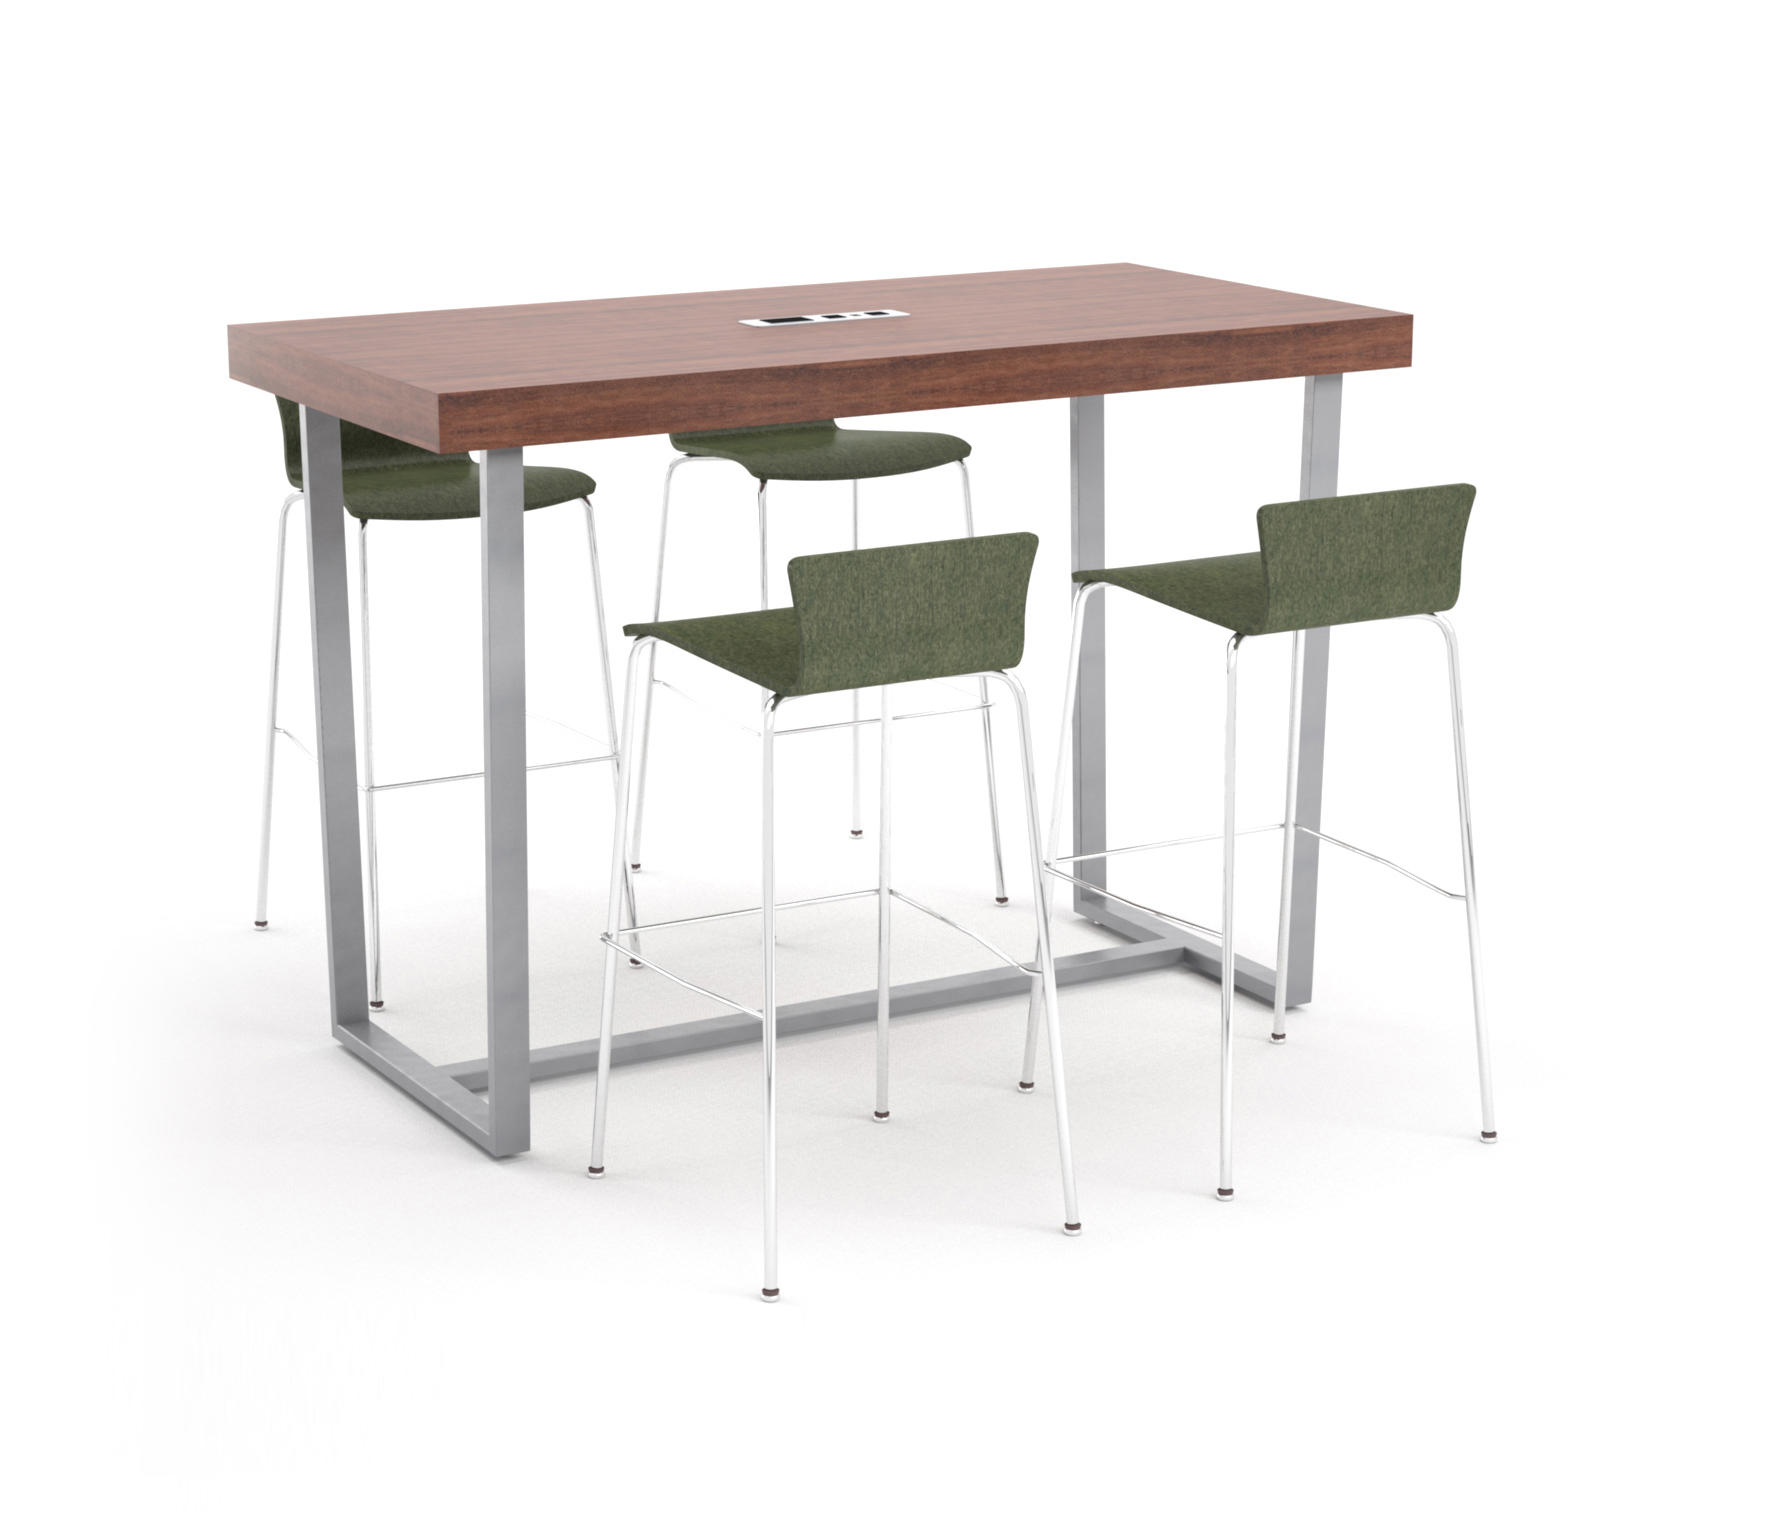 Parma bar height table angled metal table standing tables from erg parma bar height table angled metal table by erg international standing tables watchthetrailerfo